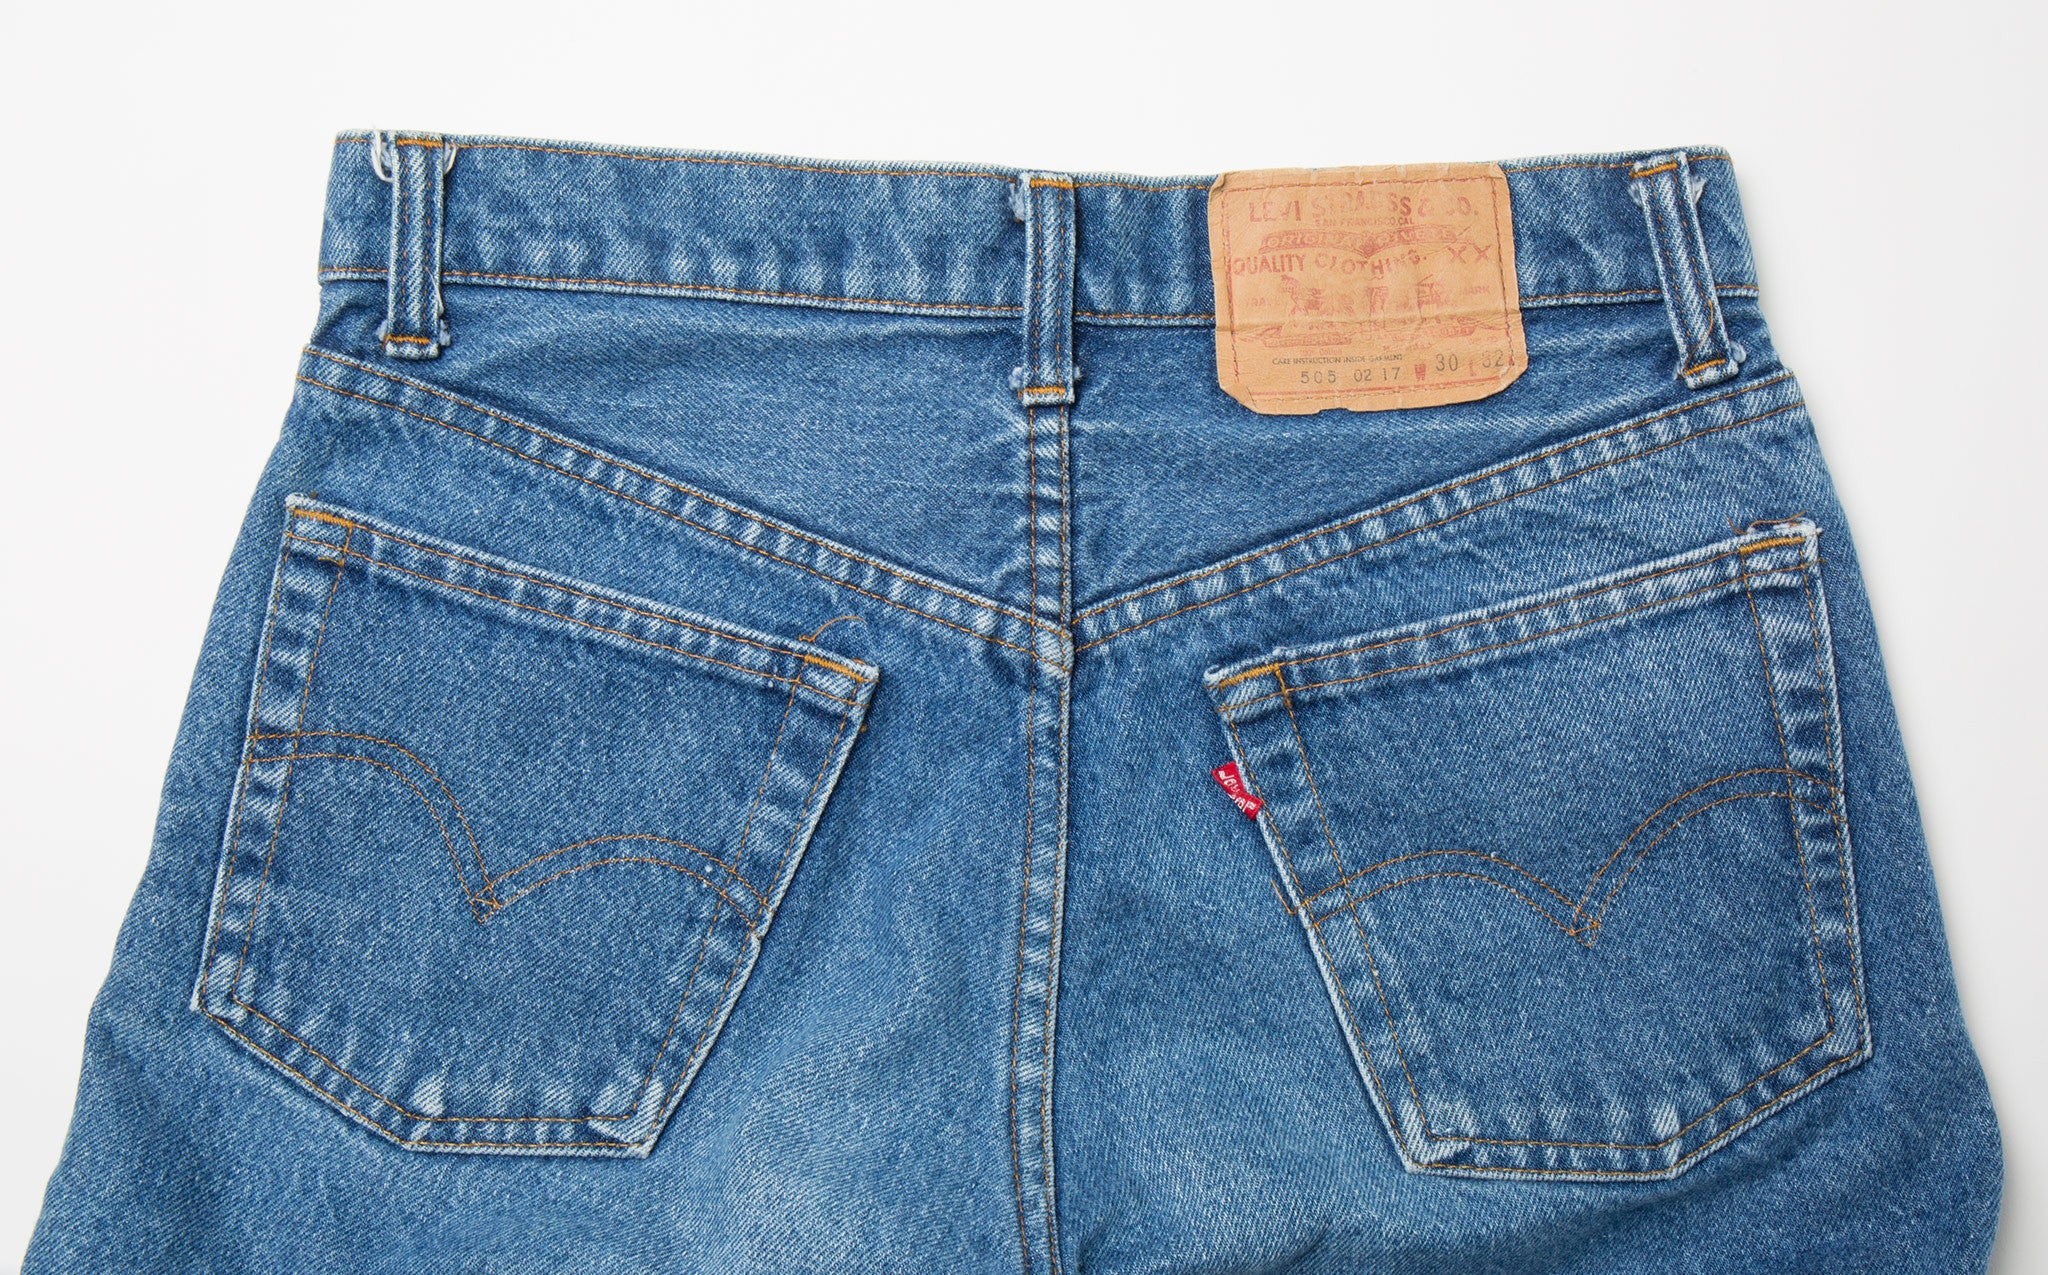 Levi's 505 – Size 27/28 kindred black